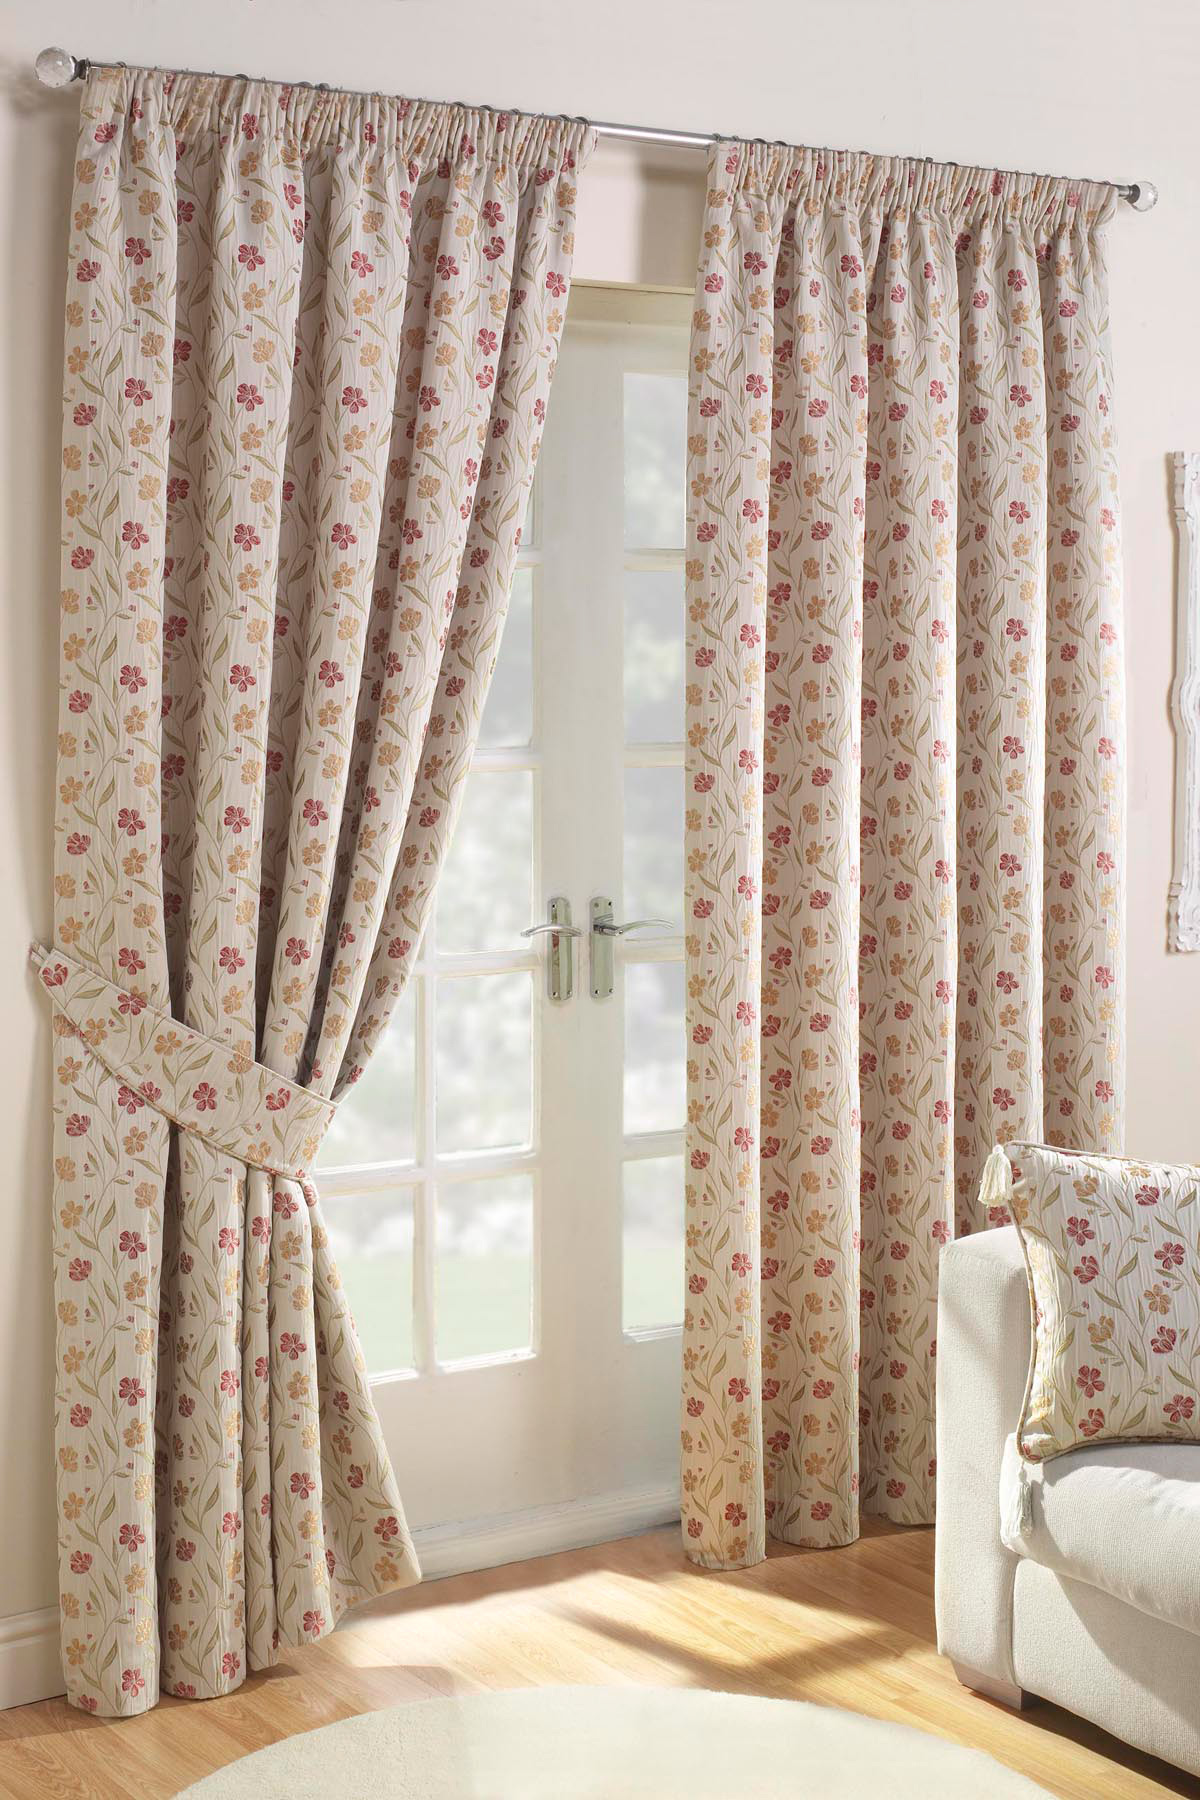 Mia Ready Made Curtains In Autumn | Free UK Delivery | Terrys Fabrics